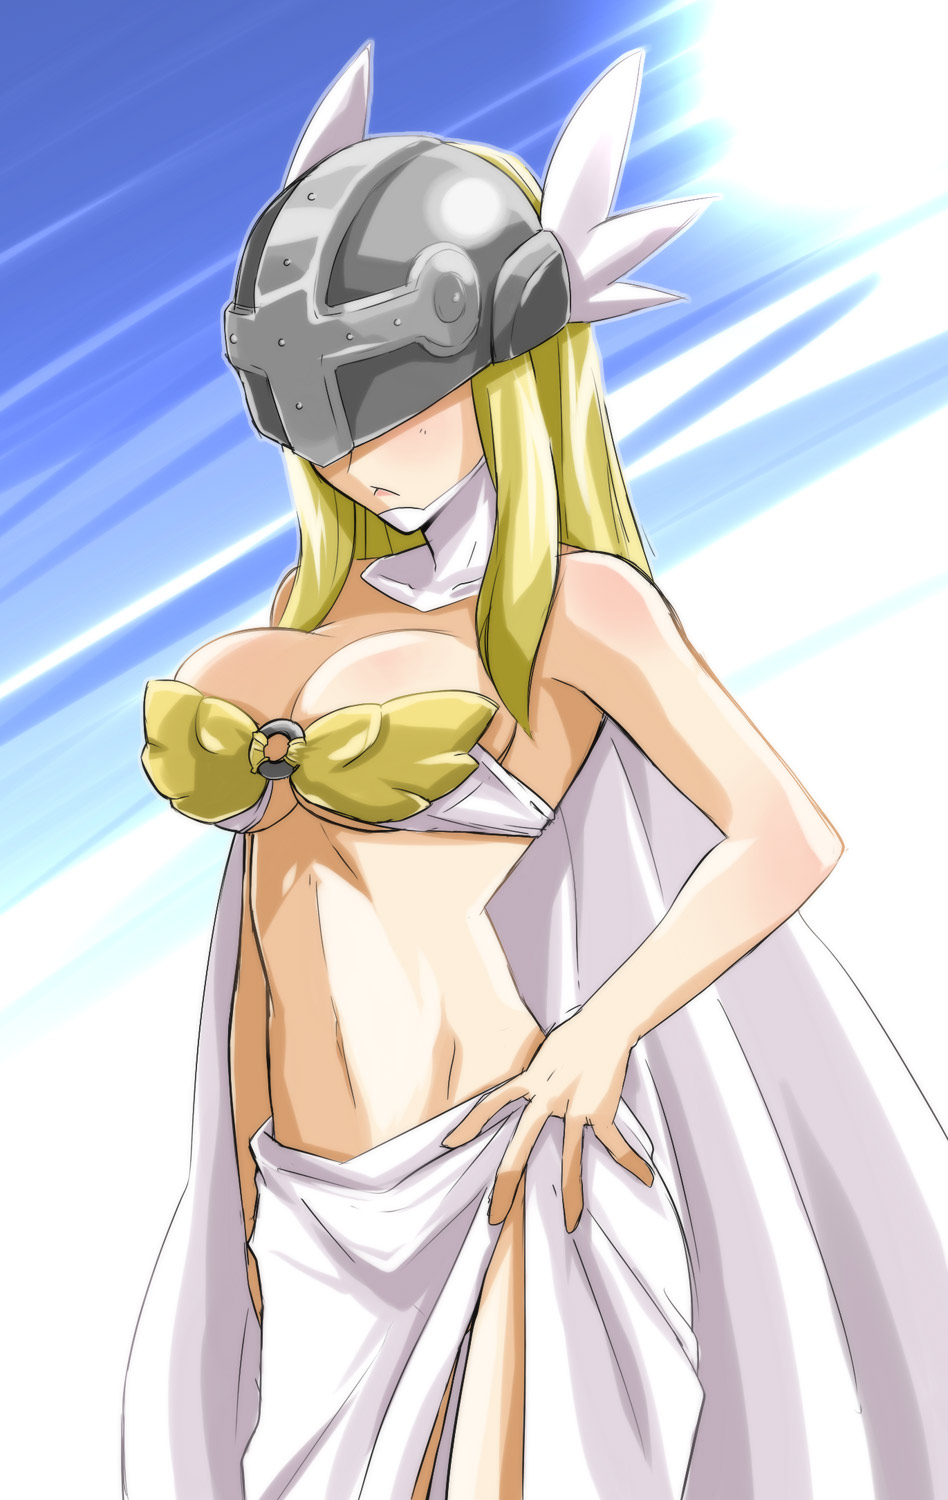 digimon angewomon - XXGASM: http://xxgasm.com/photos/digimon-angewomon/